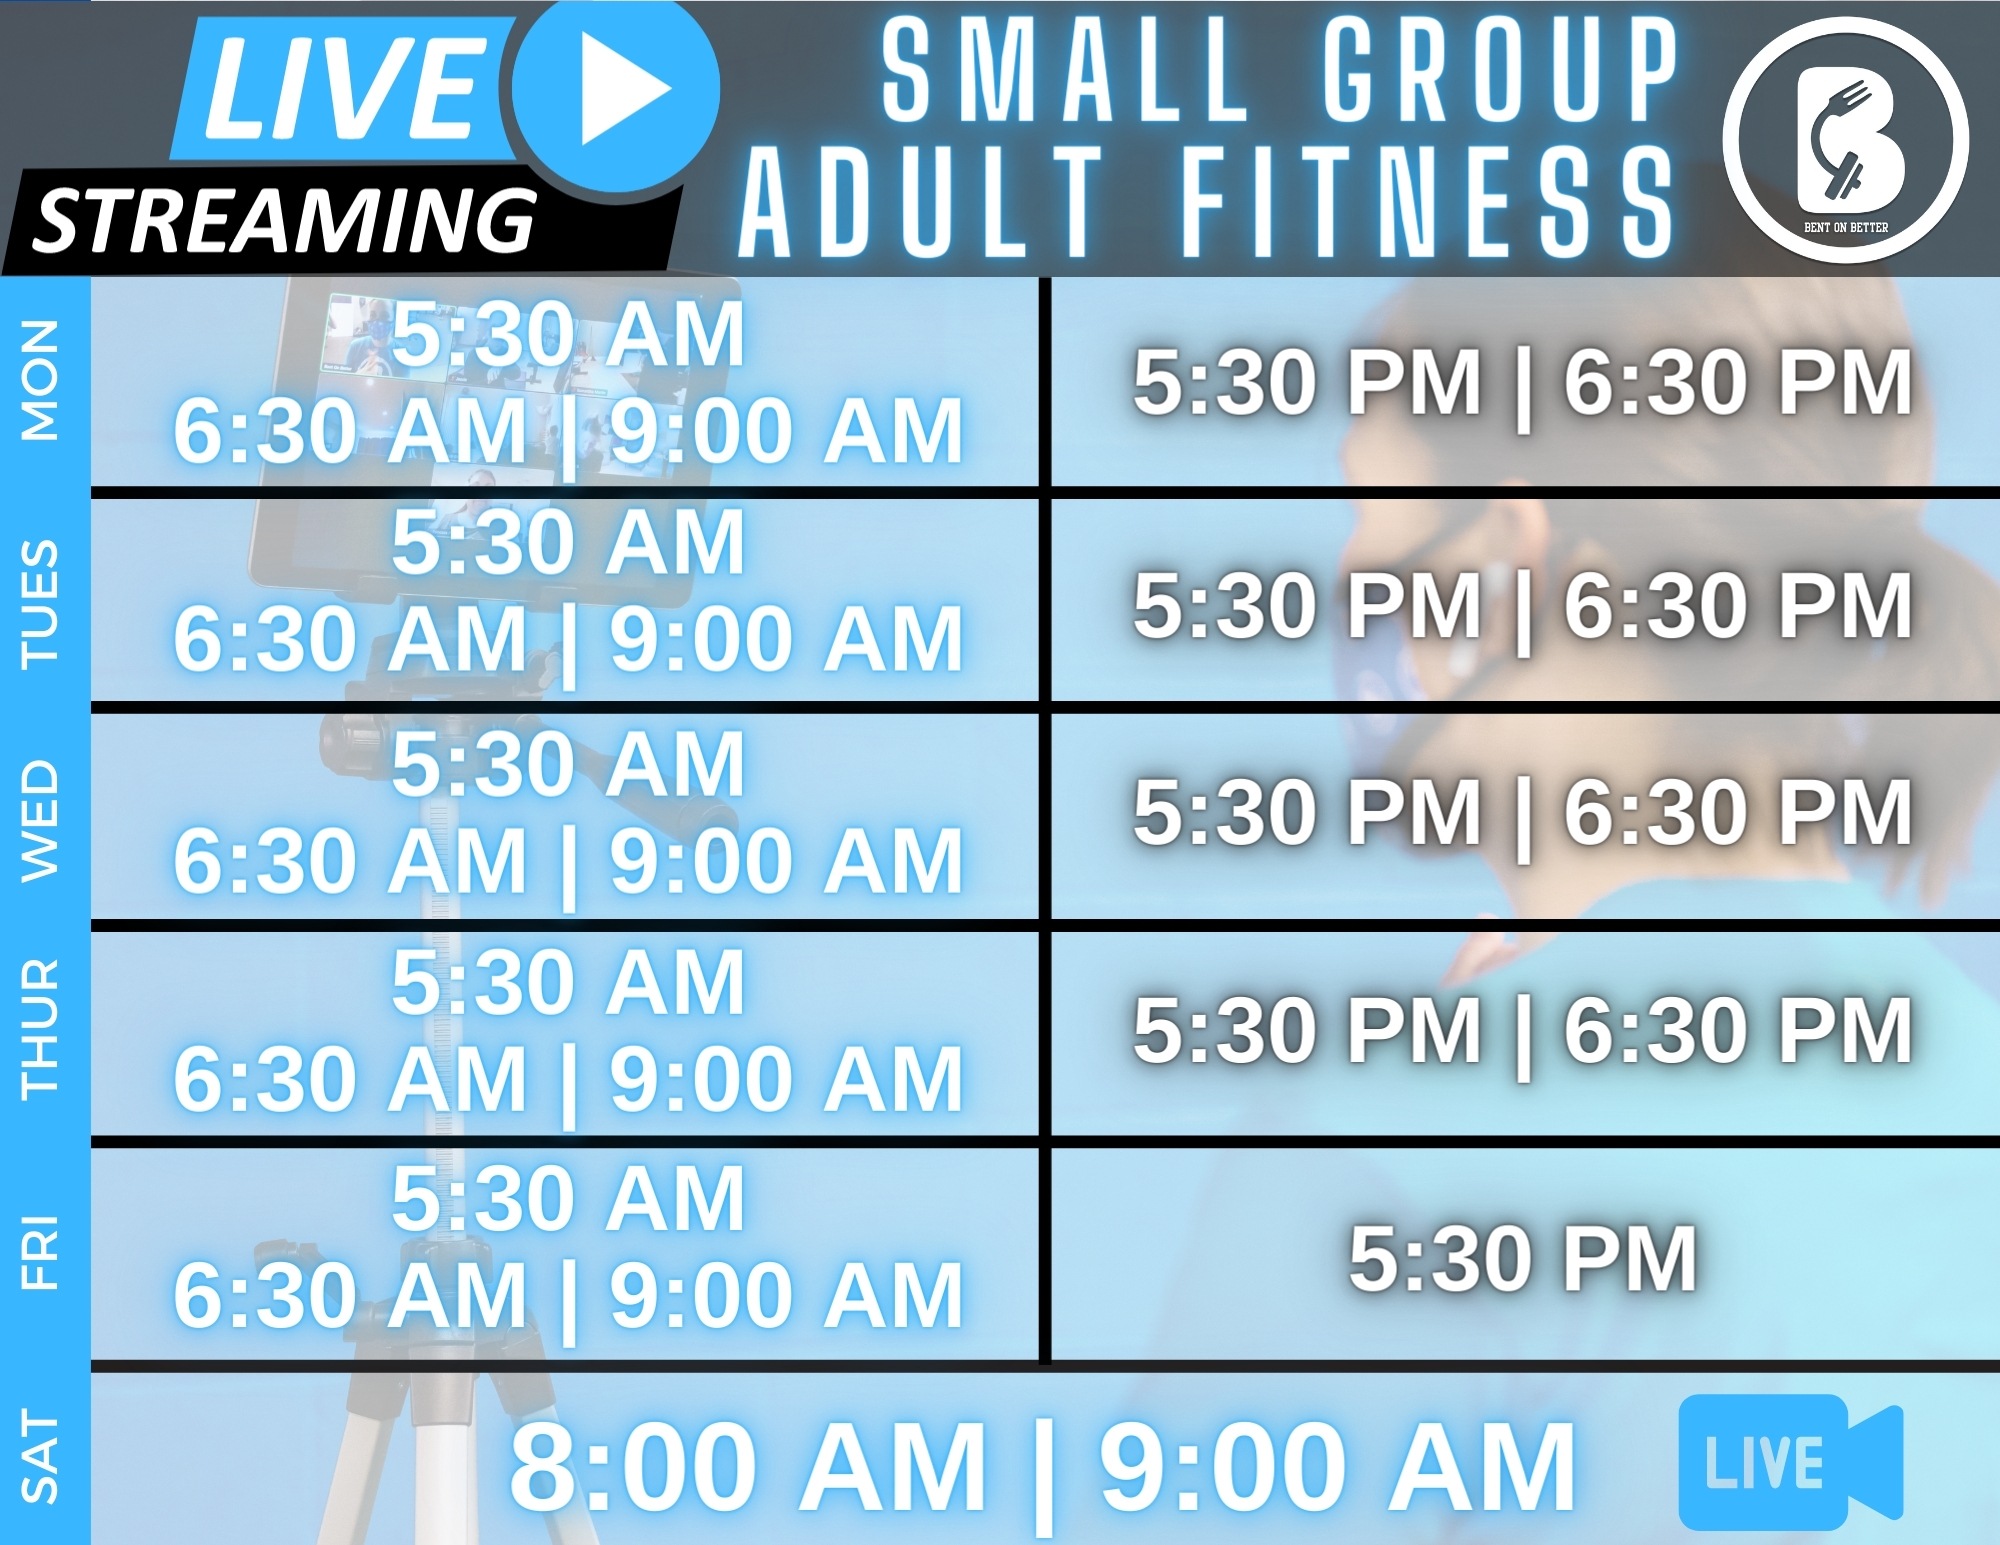 Live Streaming Virtual Adult Schedule Bent On Better